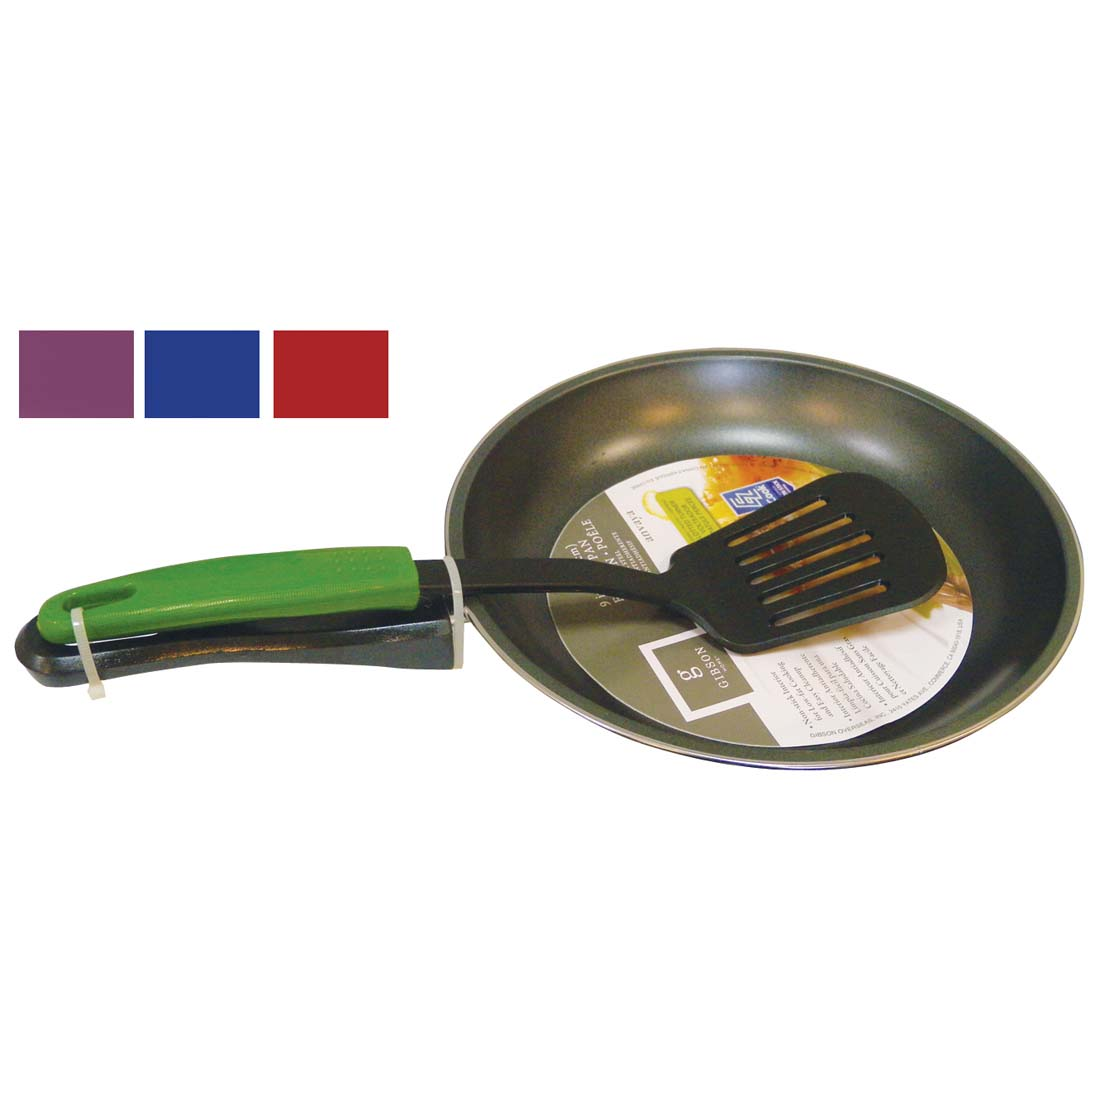 View GIBSON FRYING PAN 9 INCH NON-STICK WITH SPATULA 12.5 INCH ASSORTED COLORS